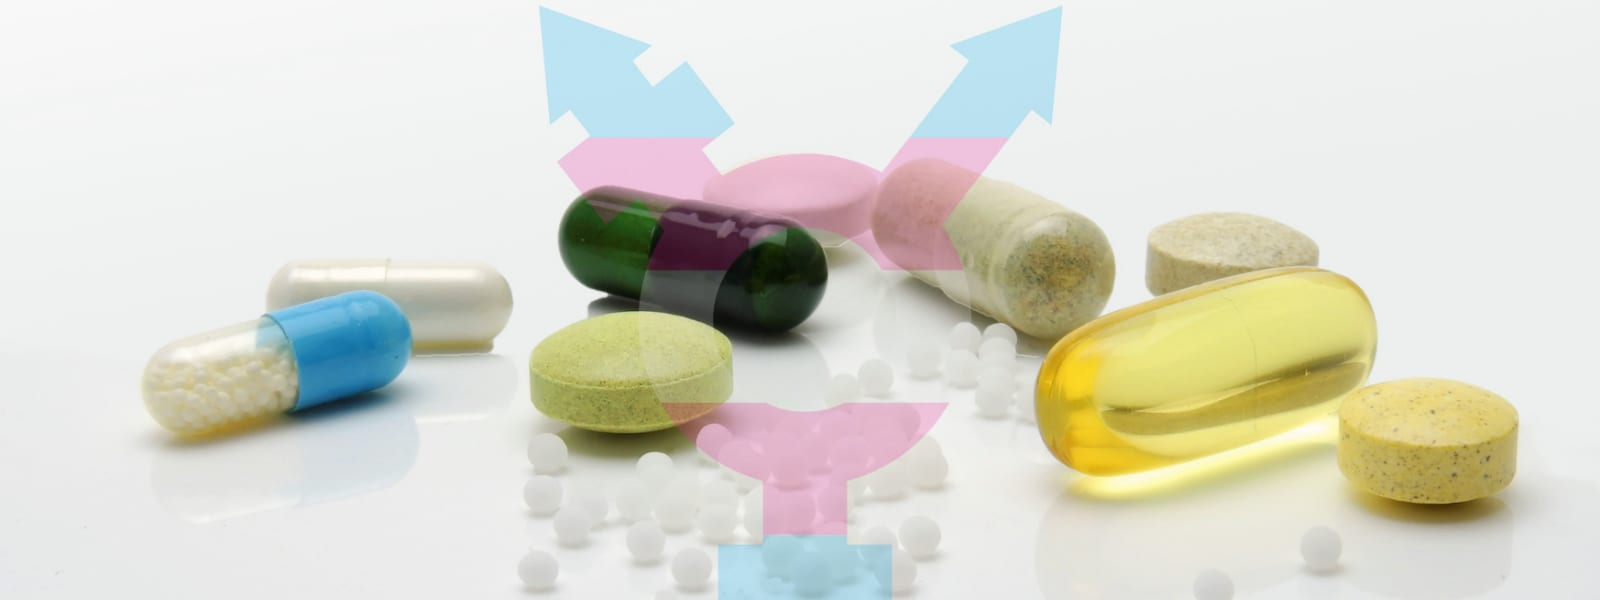 Prescriptions Withdrawn from GenderGP Trans Patients